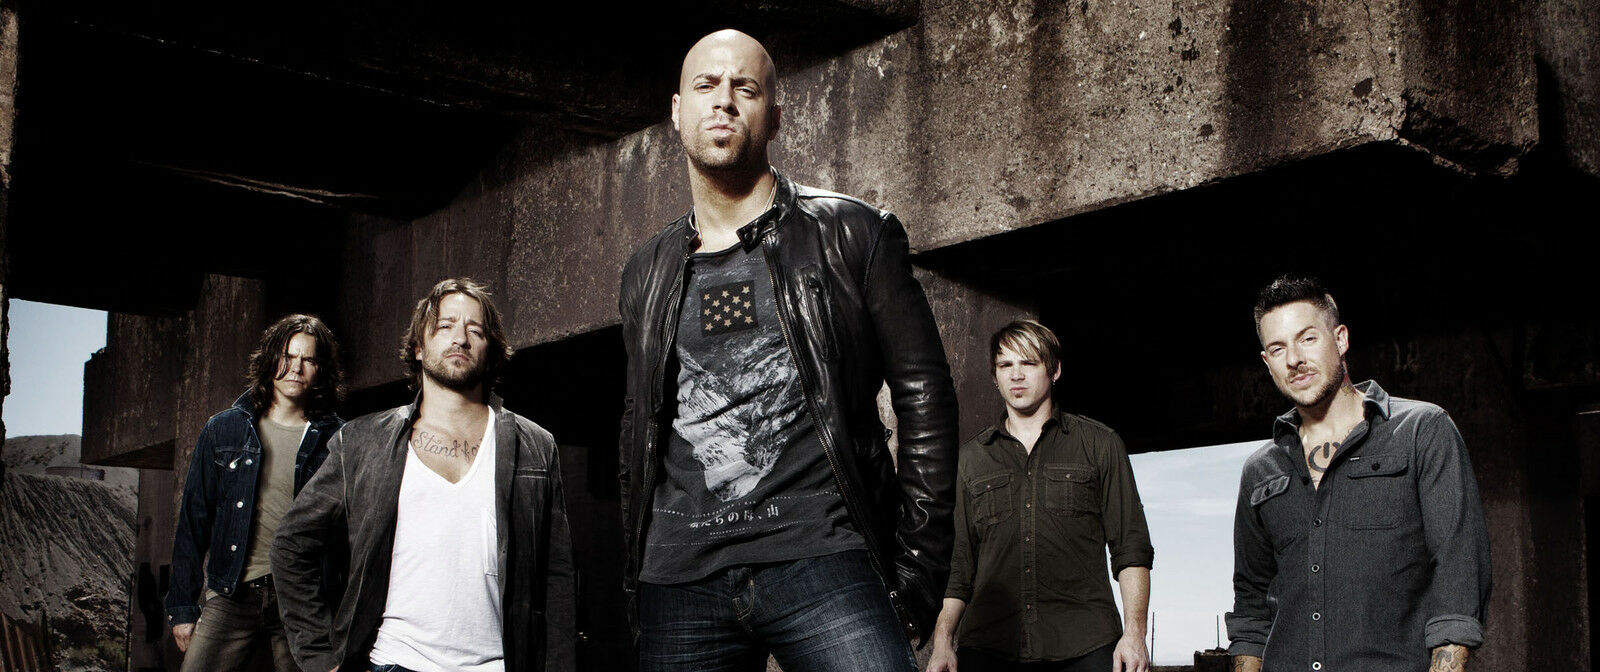 Daughtry Tickets (Rescheduled from November 20, 2018)